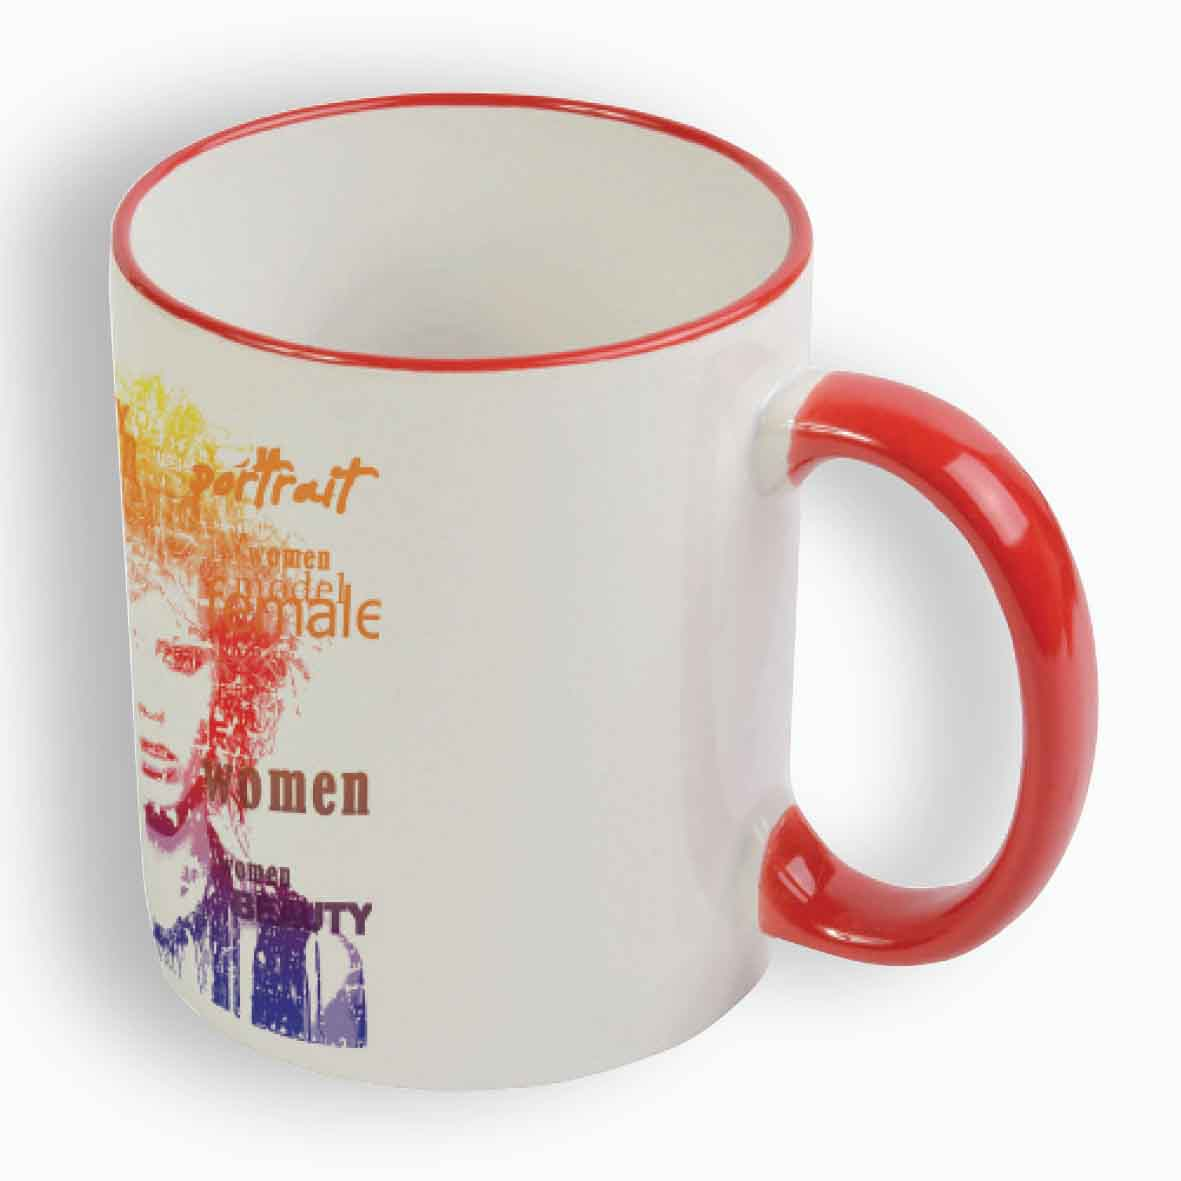 Sublimation mug 330 ml - Red sip-16433s03 subl